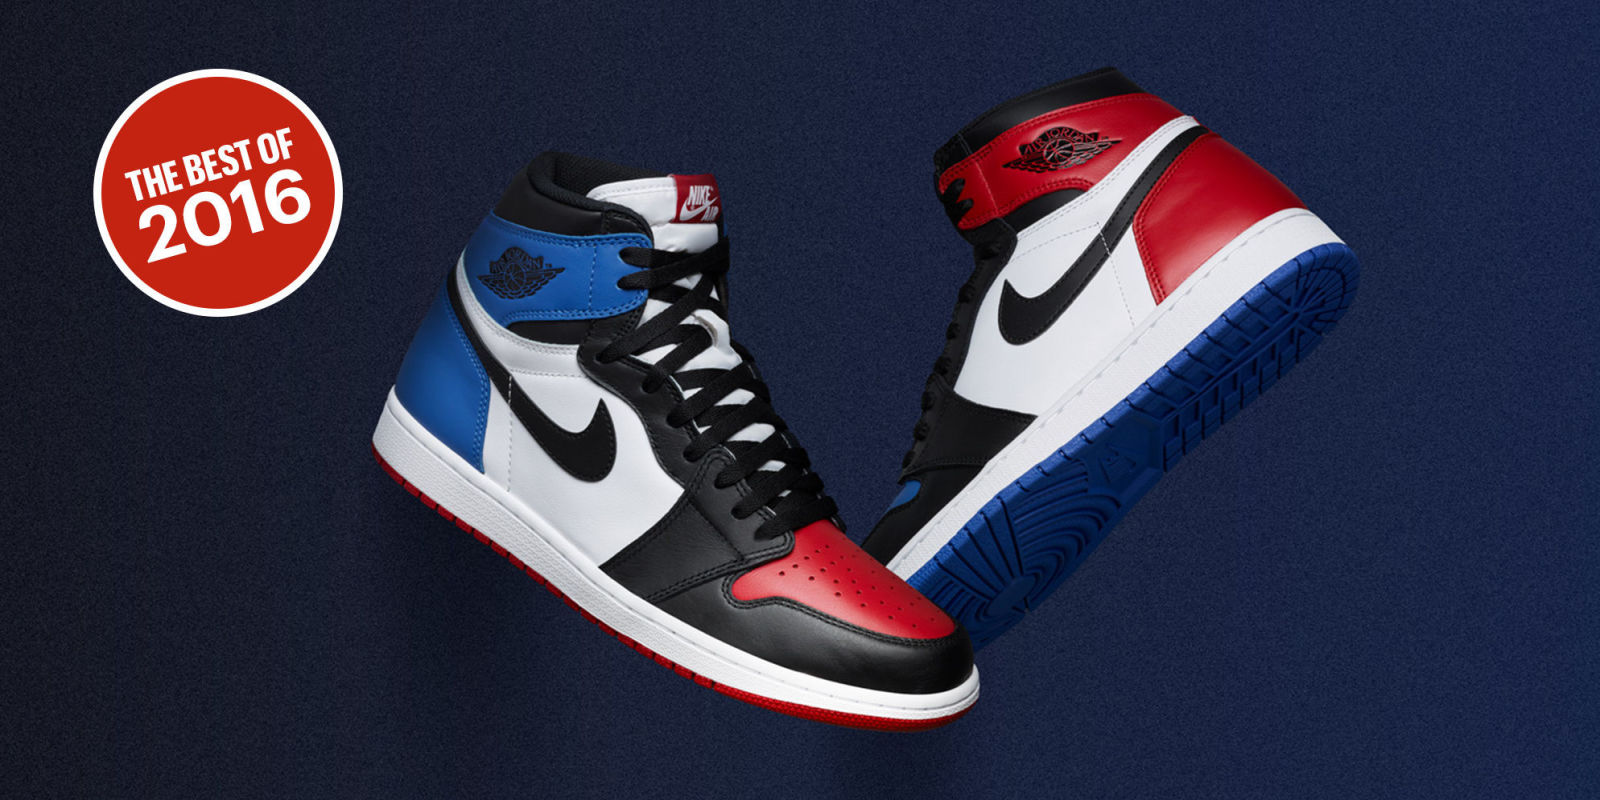 Nike Coolest Shoes